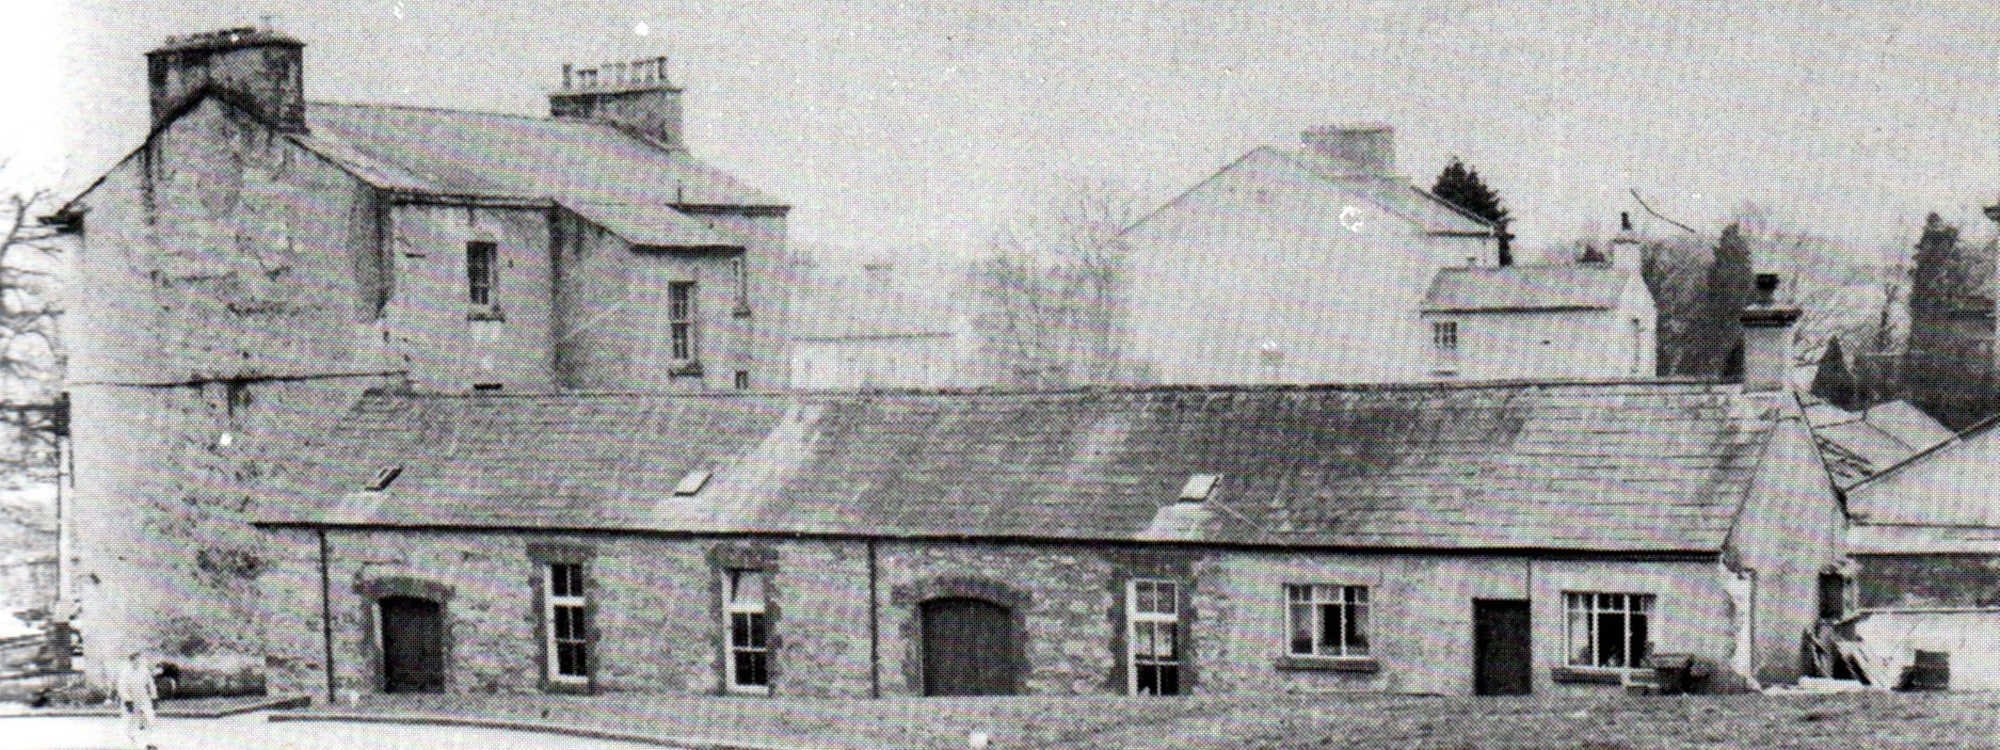 The old Temperance Hall